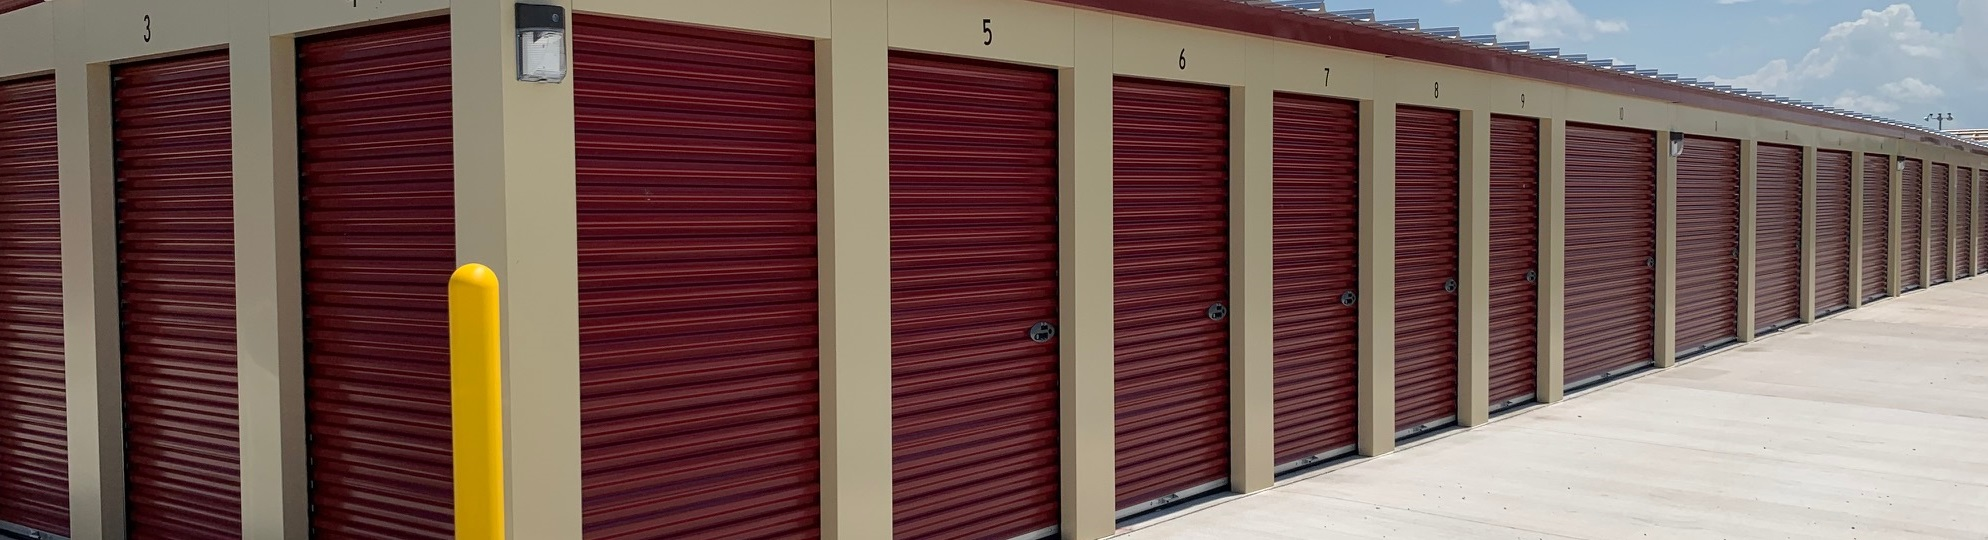 Outdoor access storage unit with 5 foot wide doors, units on all sides of the building